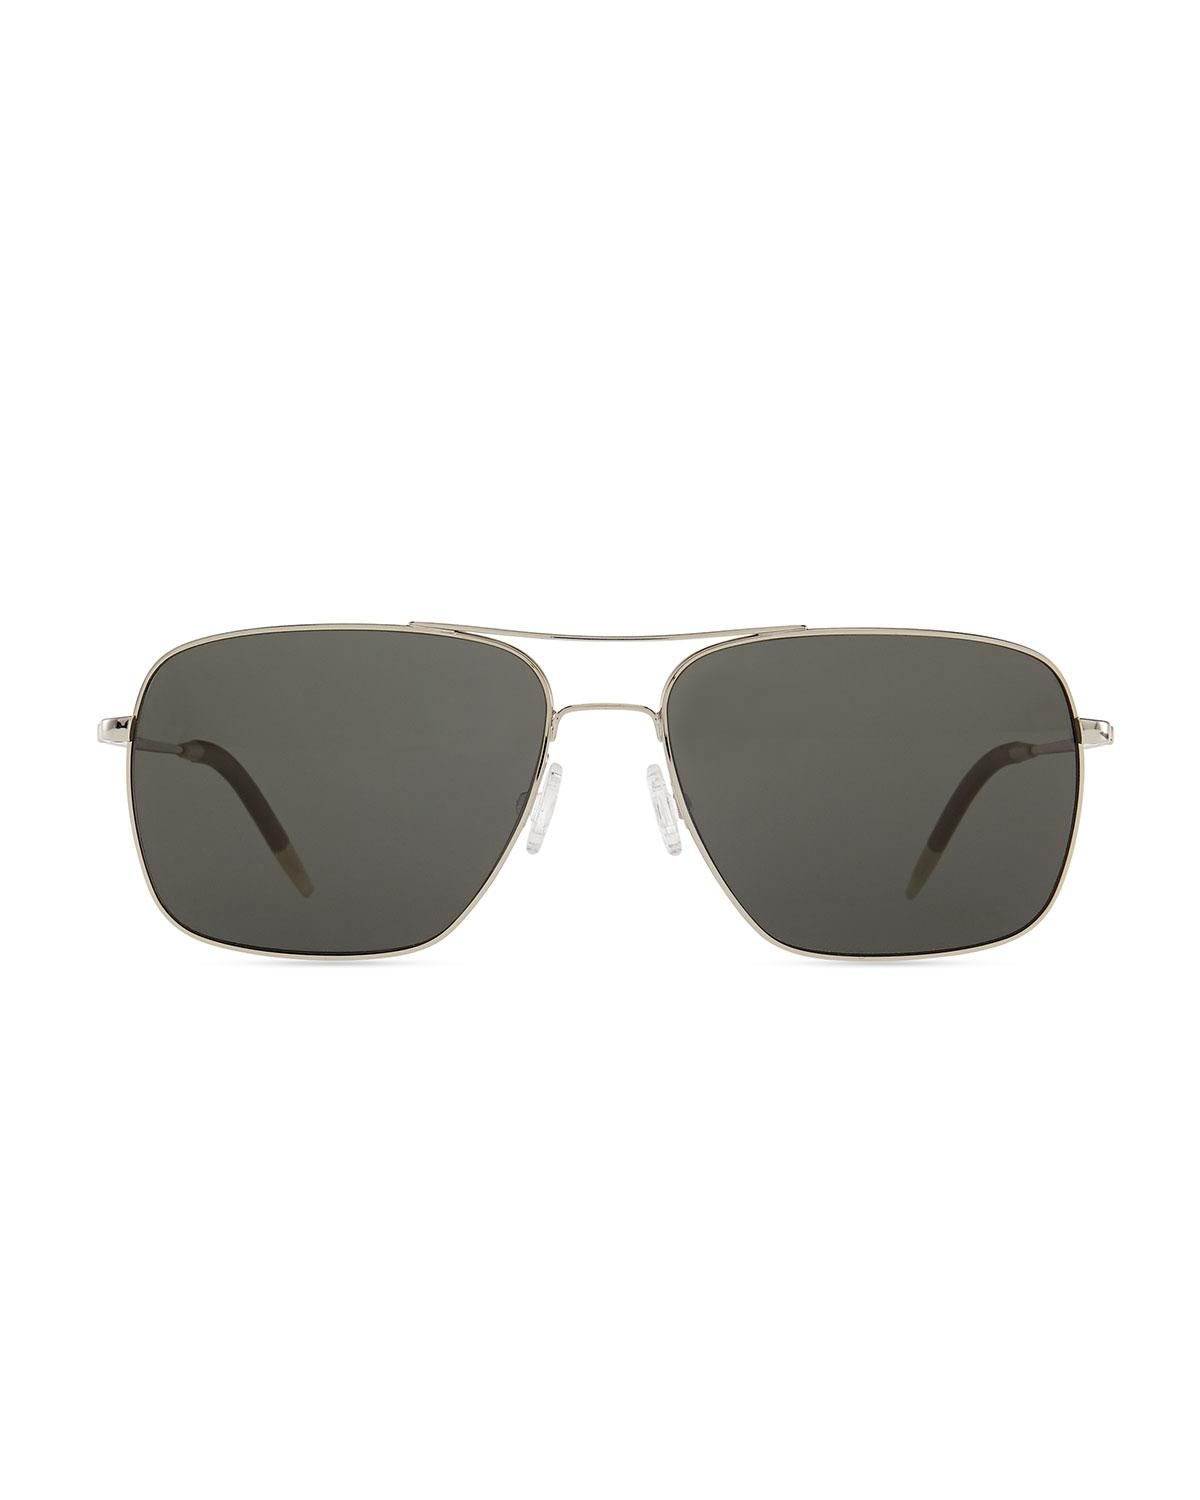 b887a32c1f8 Lyst - Oliver Peoples Clifton Polarized Sunglasses in Metallic for Men -  Save 10.0%